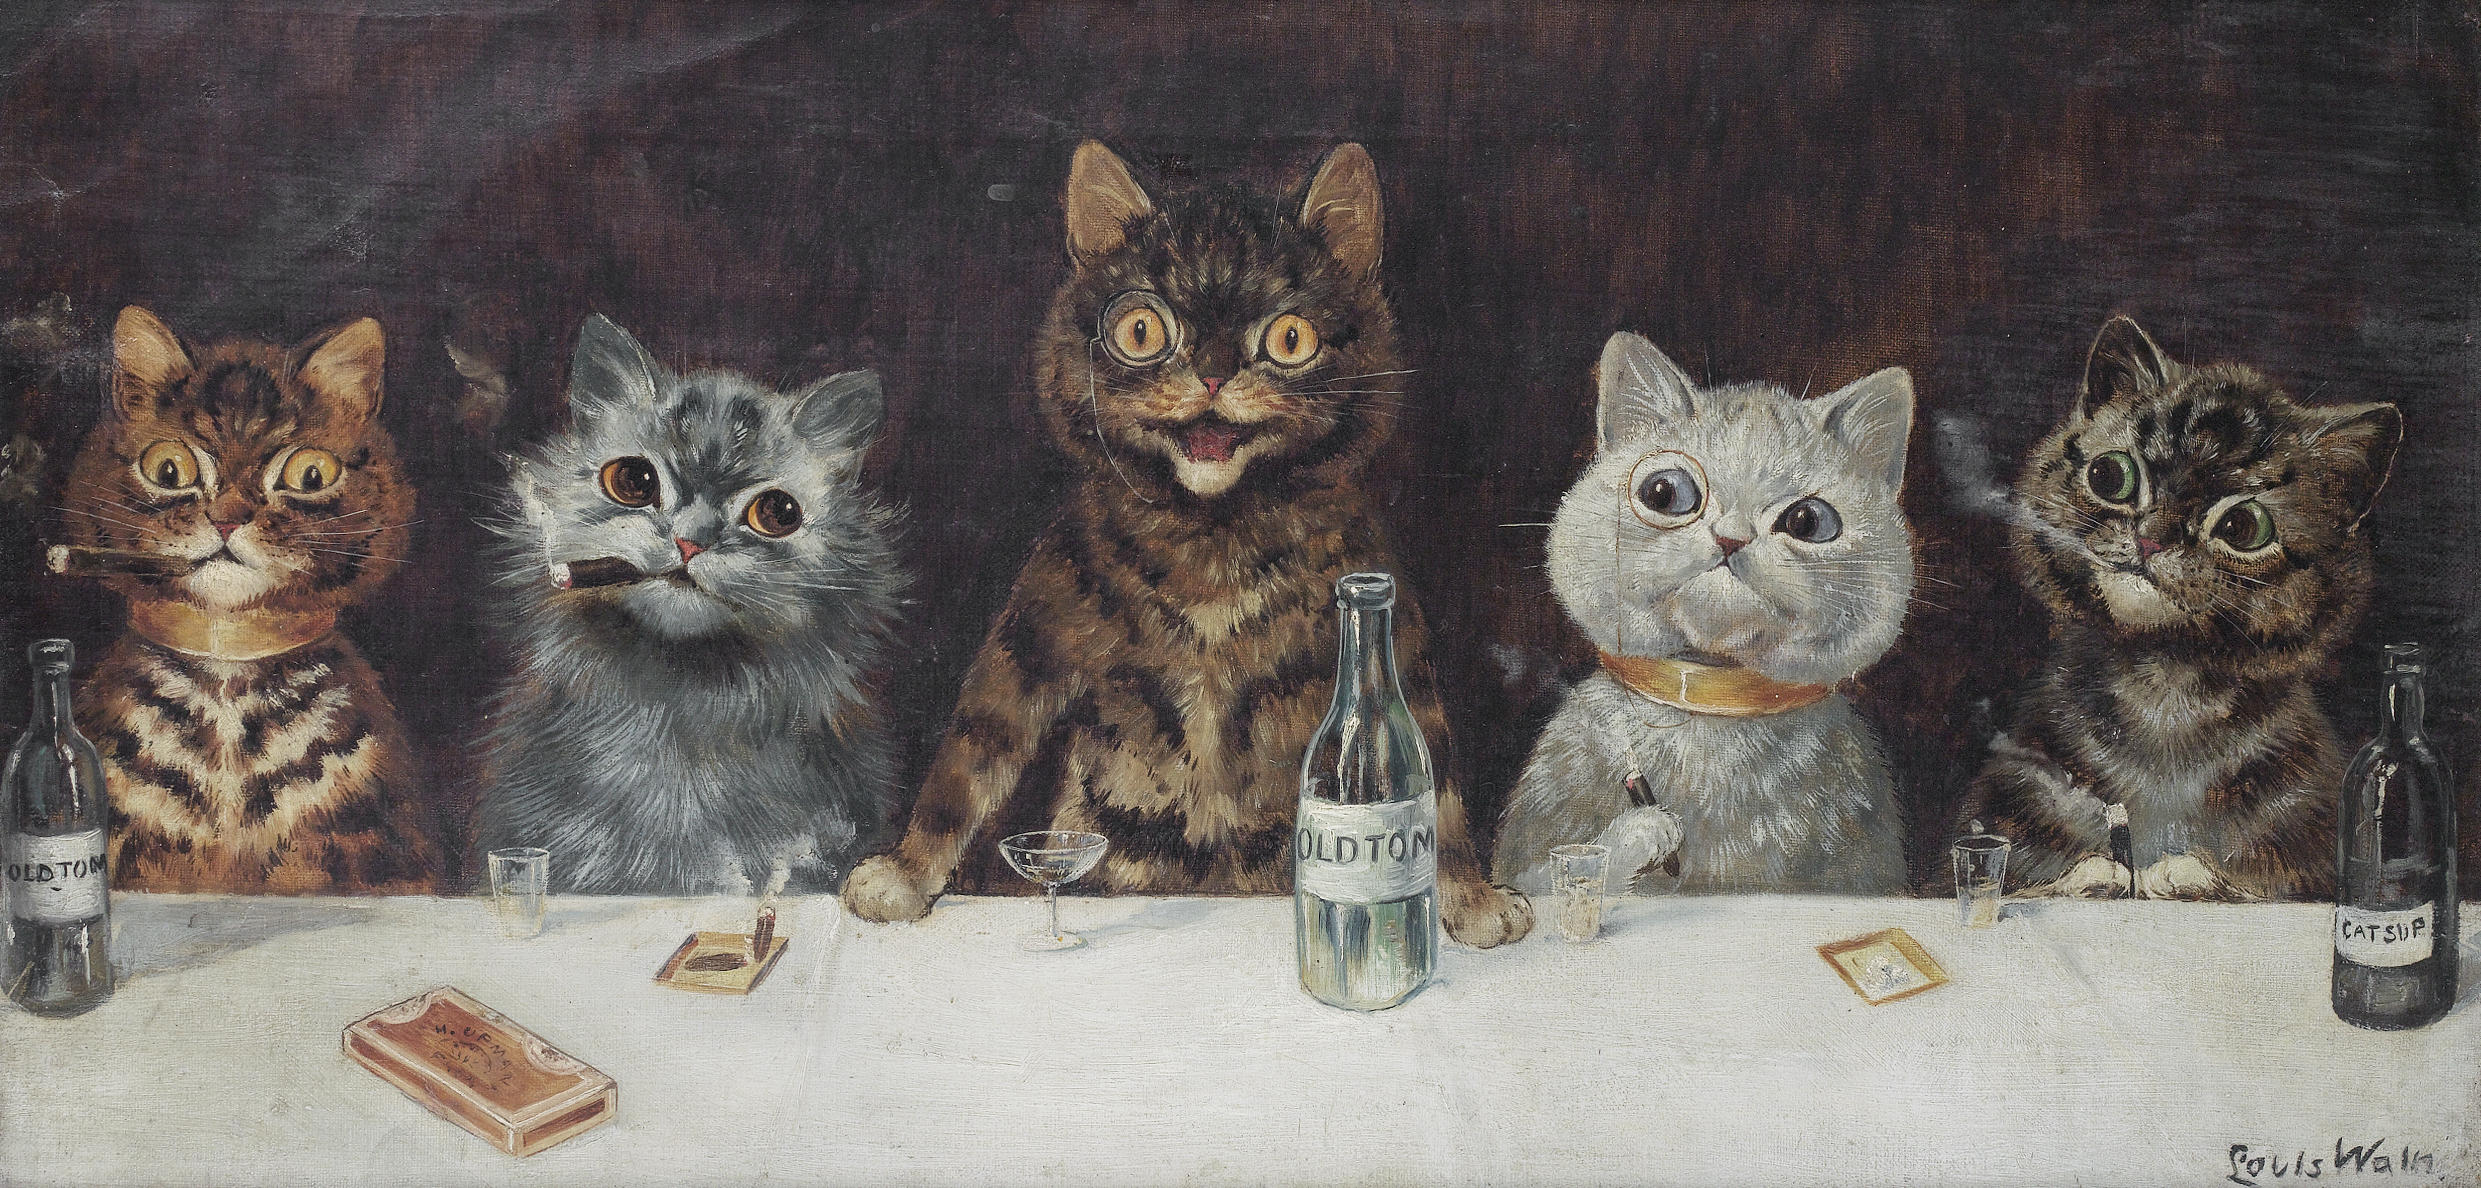 The Bachelor Party by Louis Wain